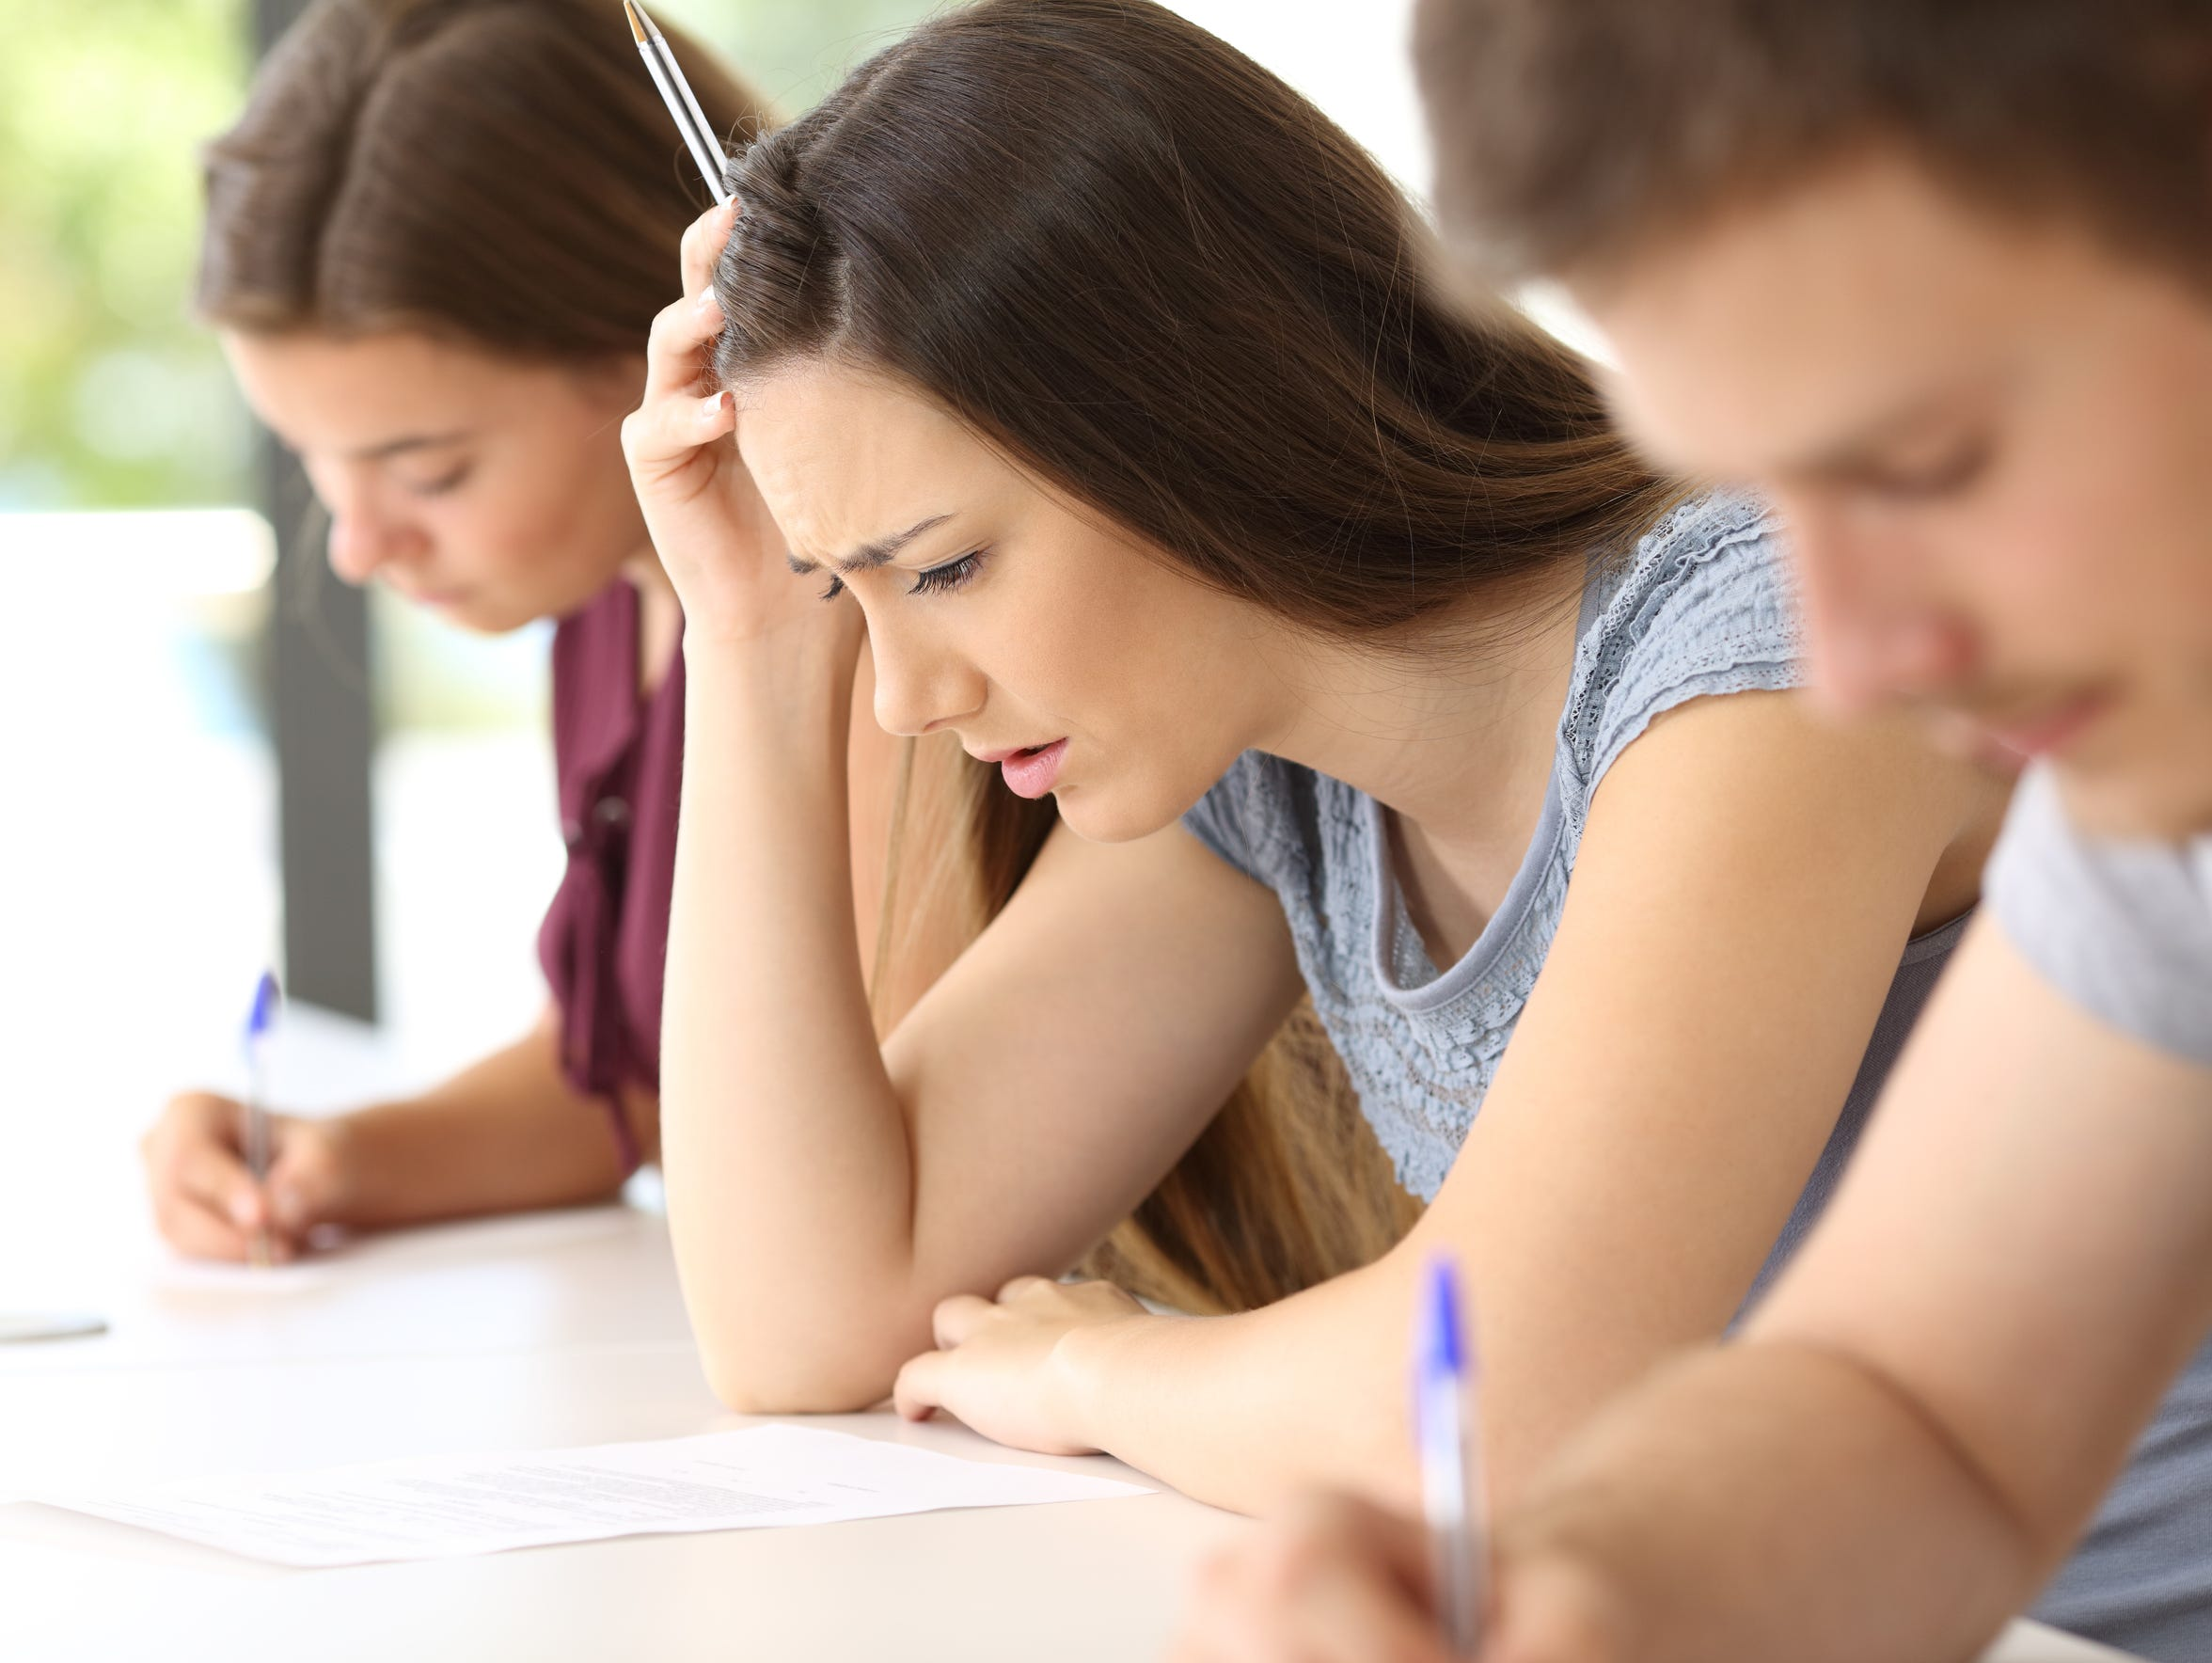 According to the American Test Anxieties Association, about 16 to 20 percentof students have high test anxiety, with another 18 percenttroubled by moderately high test anxiety.